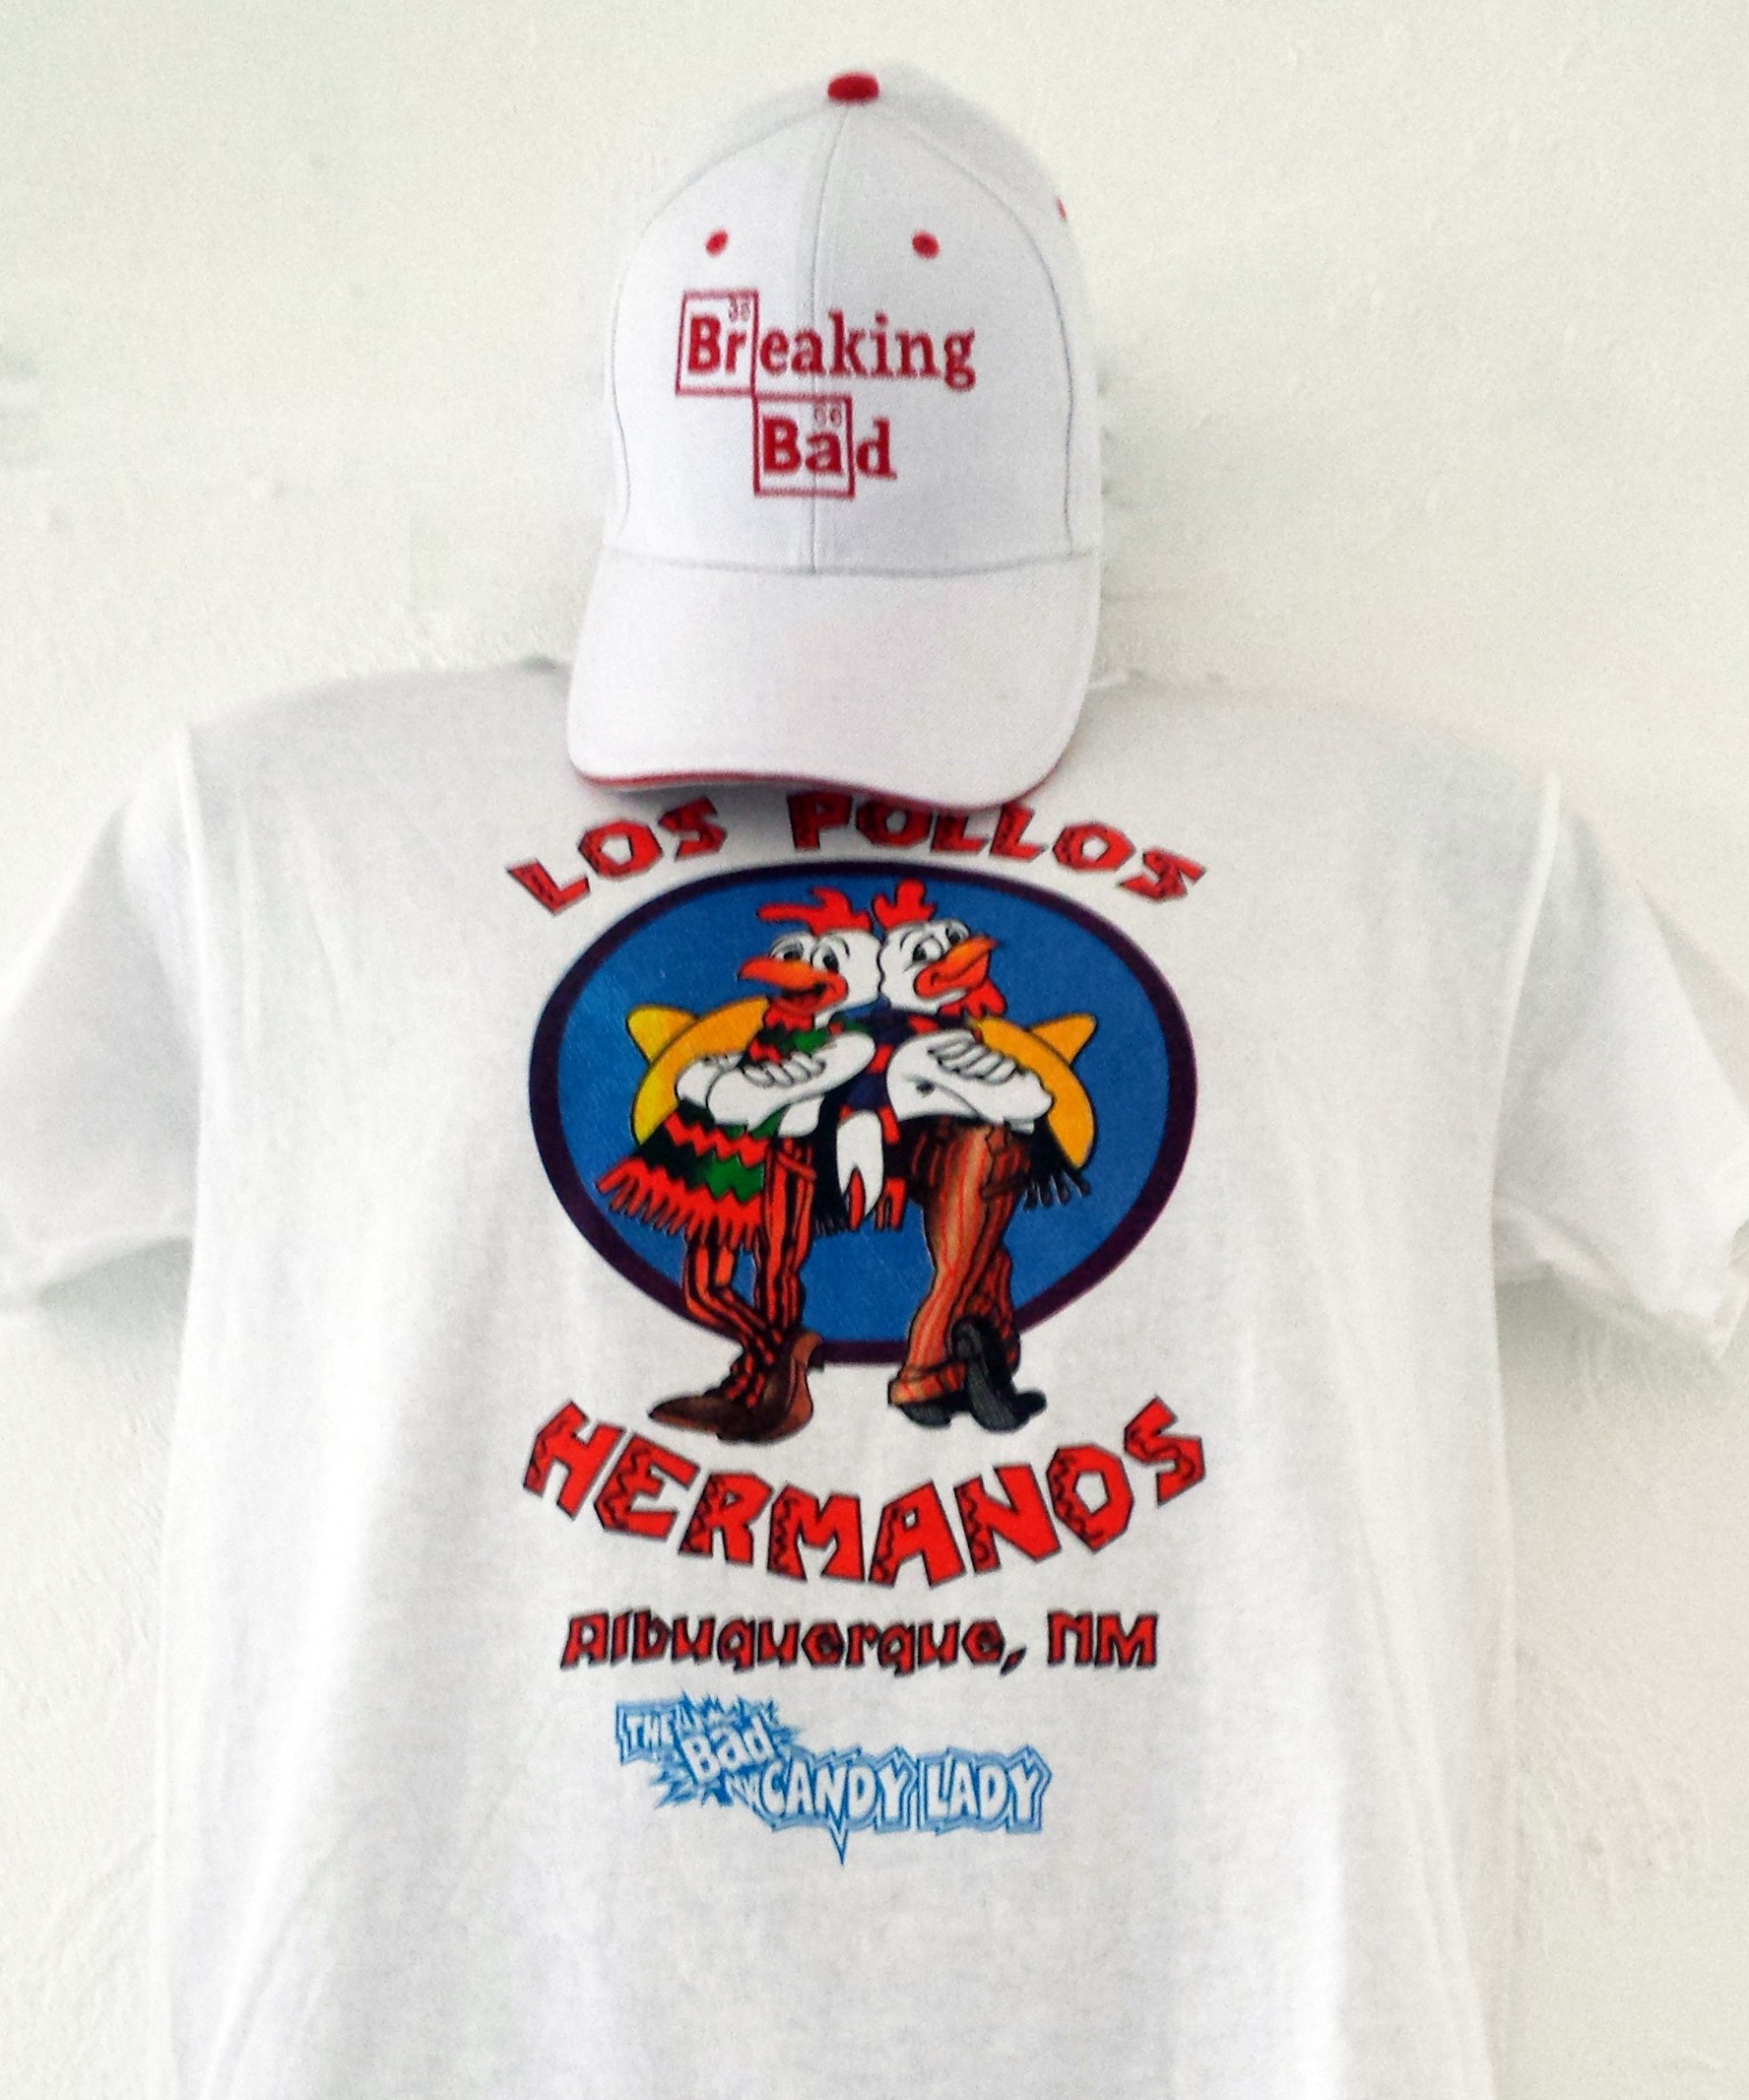 7341947f1a6a Los Pollos Hermanos T-shirt | The Candy Lady